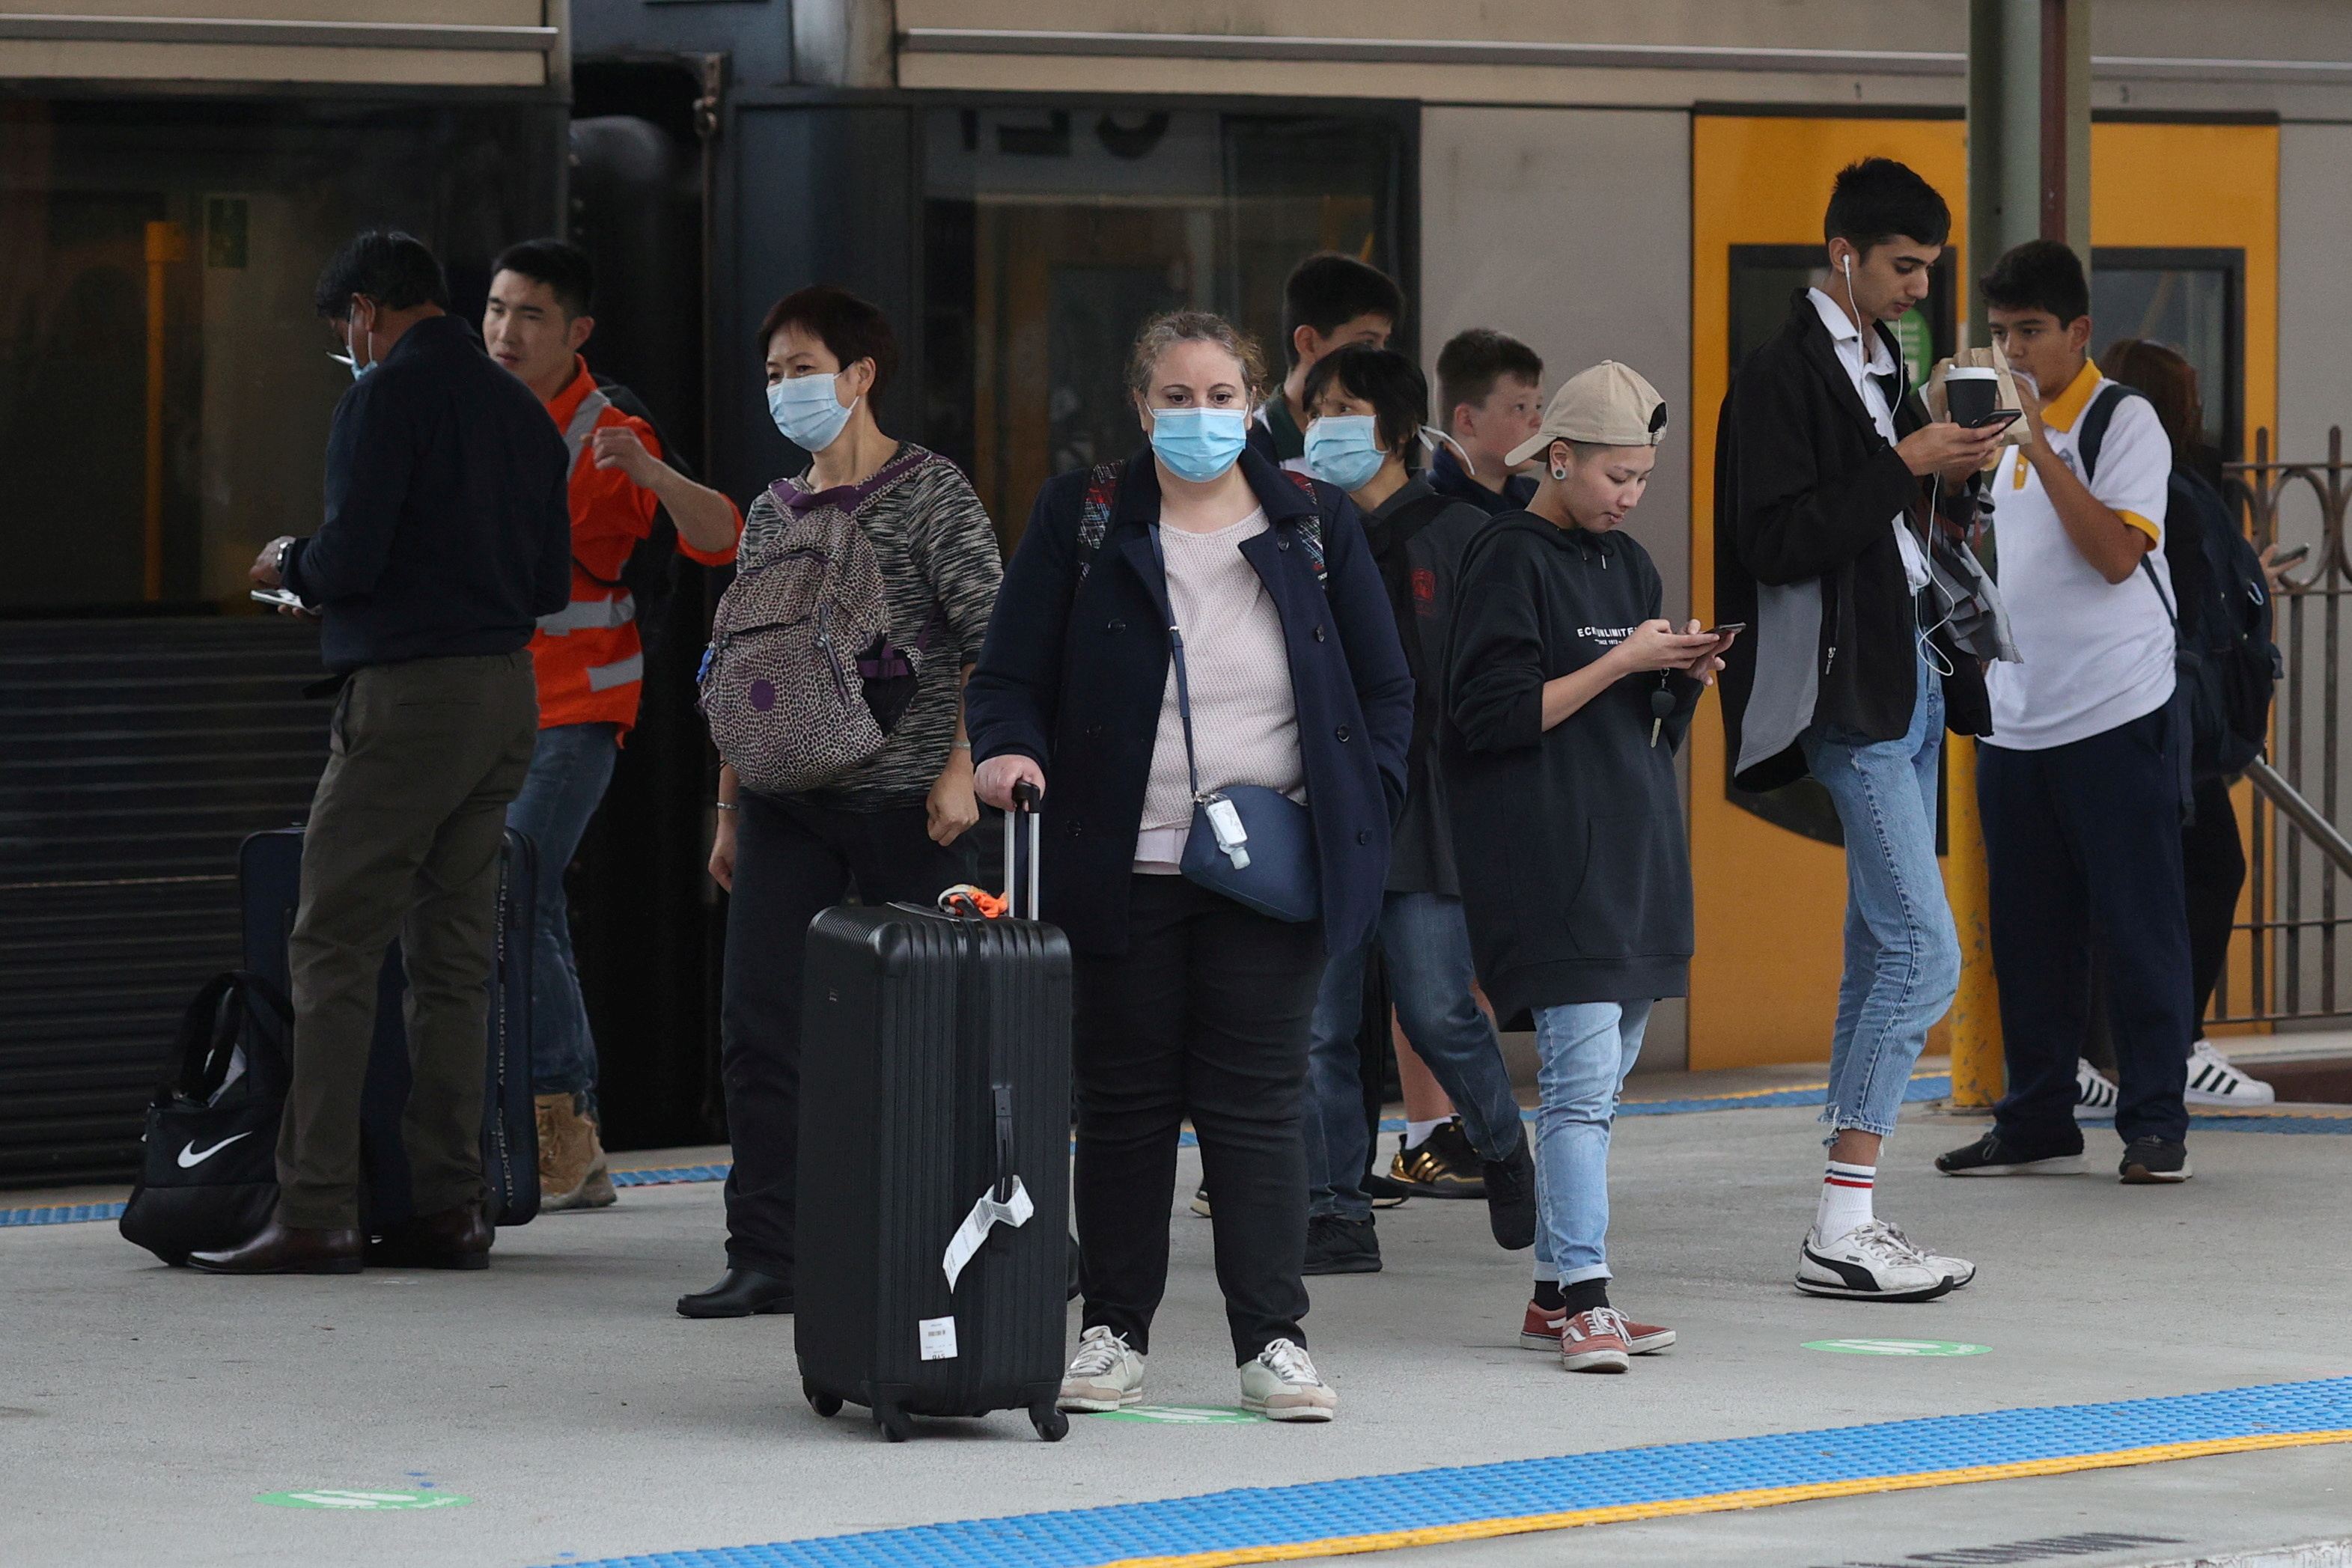 People, some wearing protective face masks, stand on a train platform at Central Station after new public health regulations were announced for greater Sydney, including compulsory mask-wearing on public transport, following the emergence of new cases of the coronavirus disease (COVID-19) in Sydney, Australia, May 6, 2021.  REUTERS/Loren Elliott